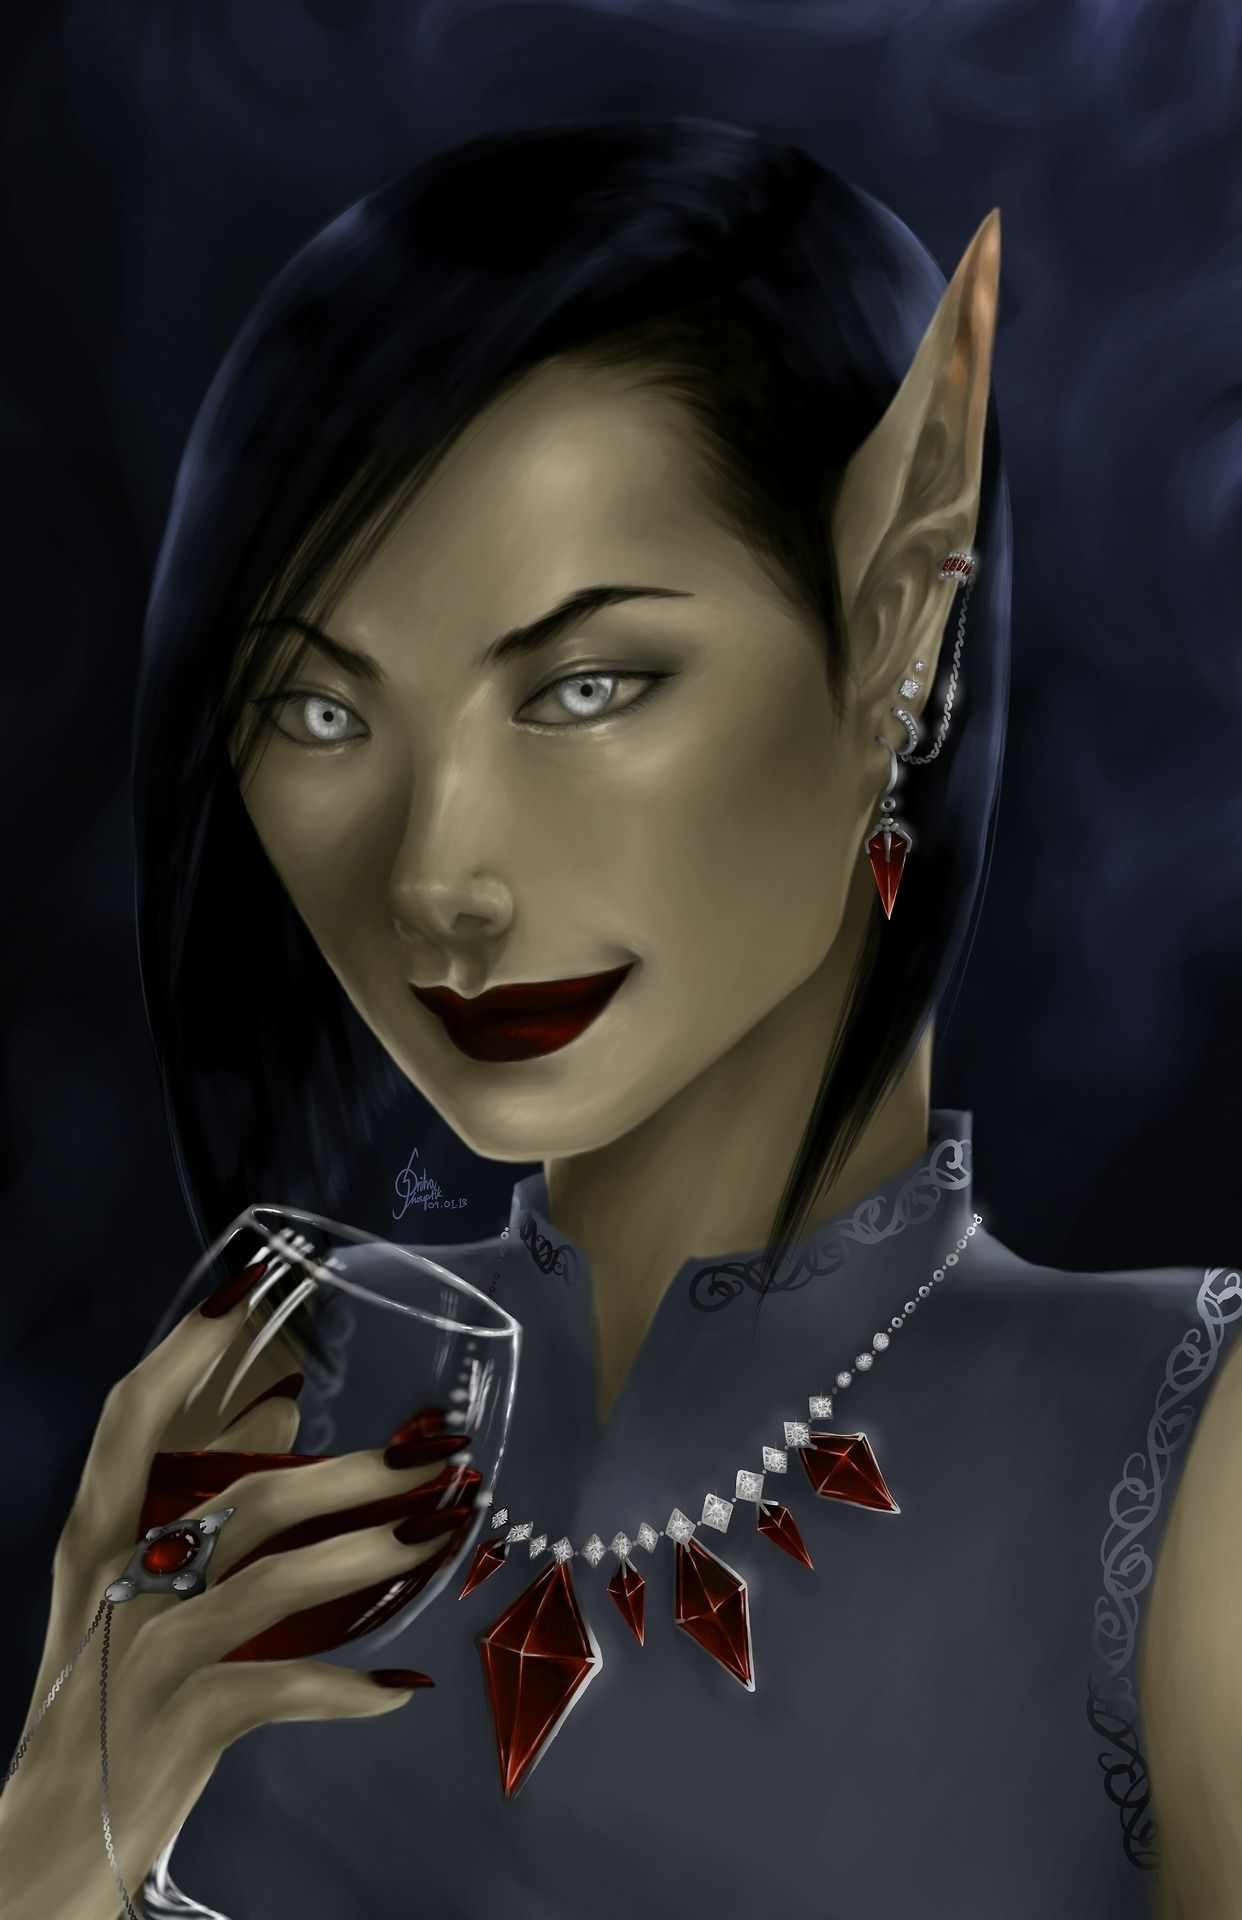 Fanart Of Amren From A Court Of Thorns And Roses Series By Sarah J